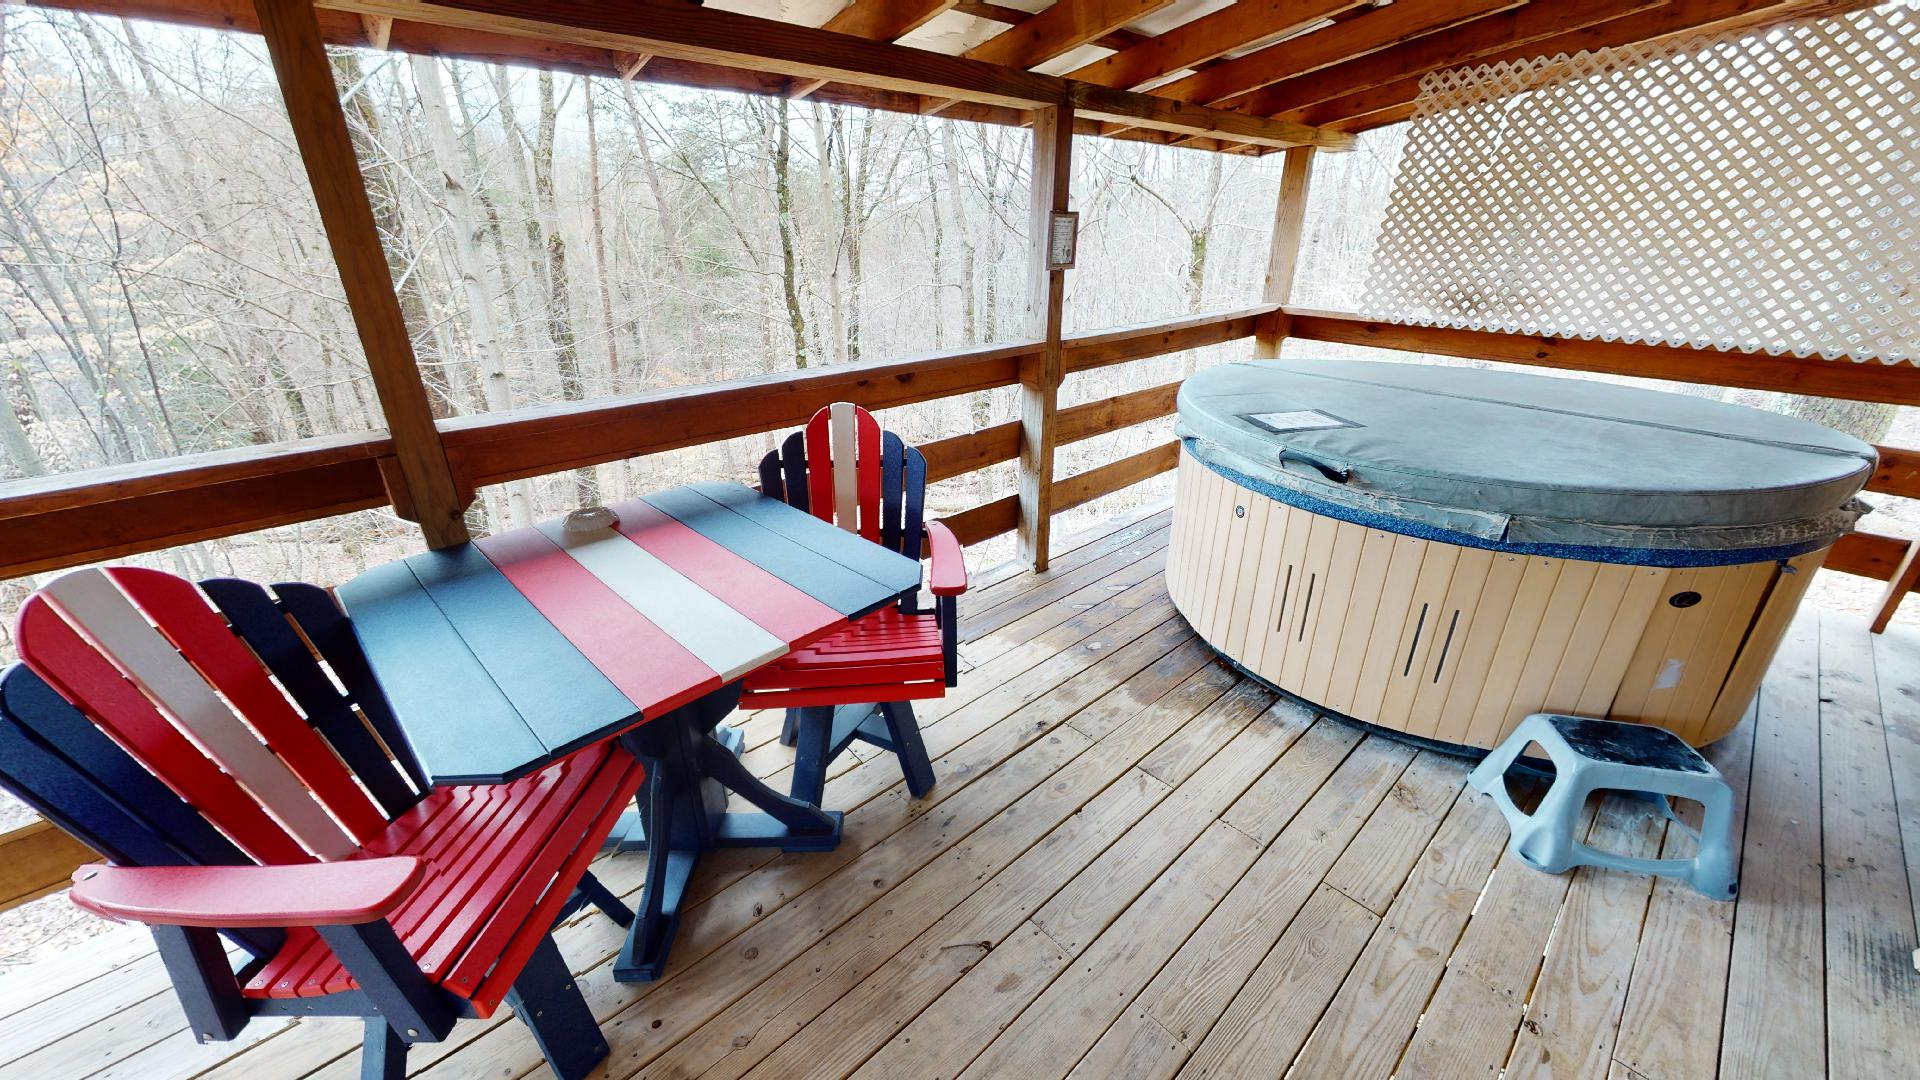 Photo 663_9177.jpg - Private 2 person hot tub on the covered back deck. Nice seating area.